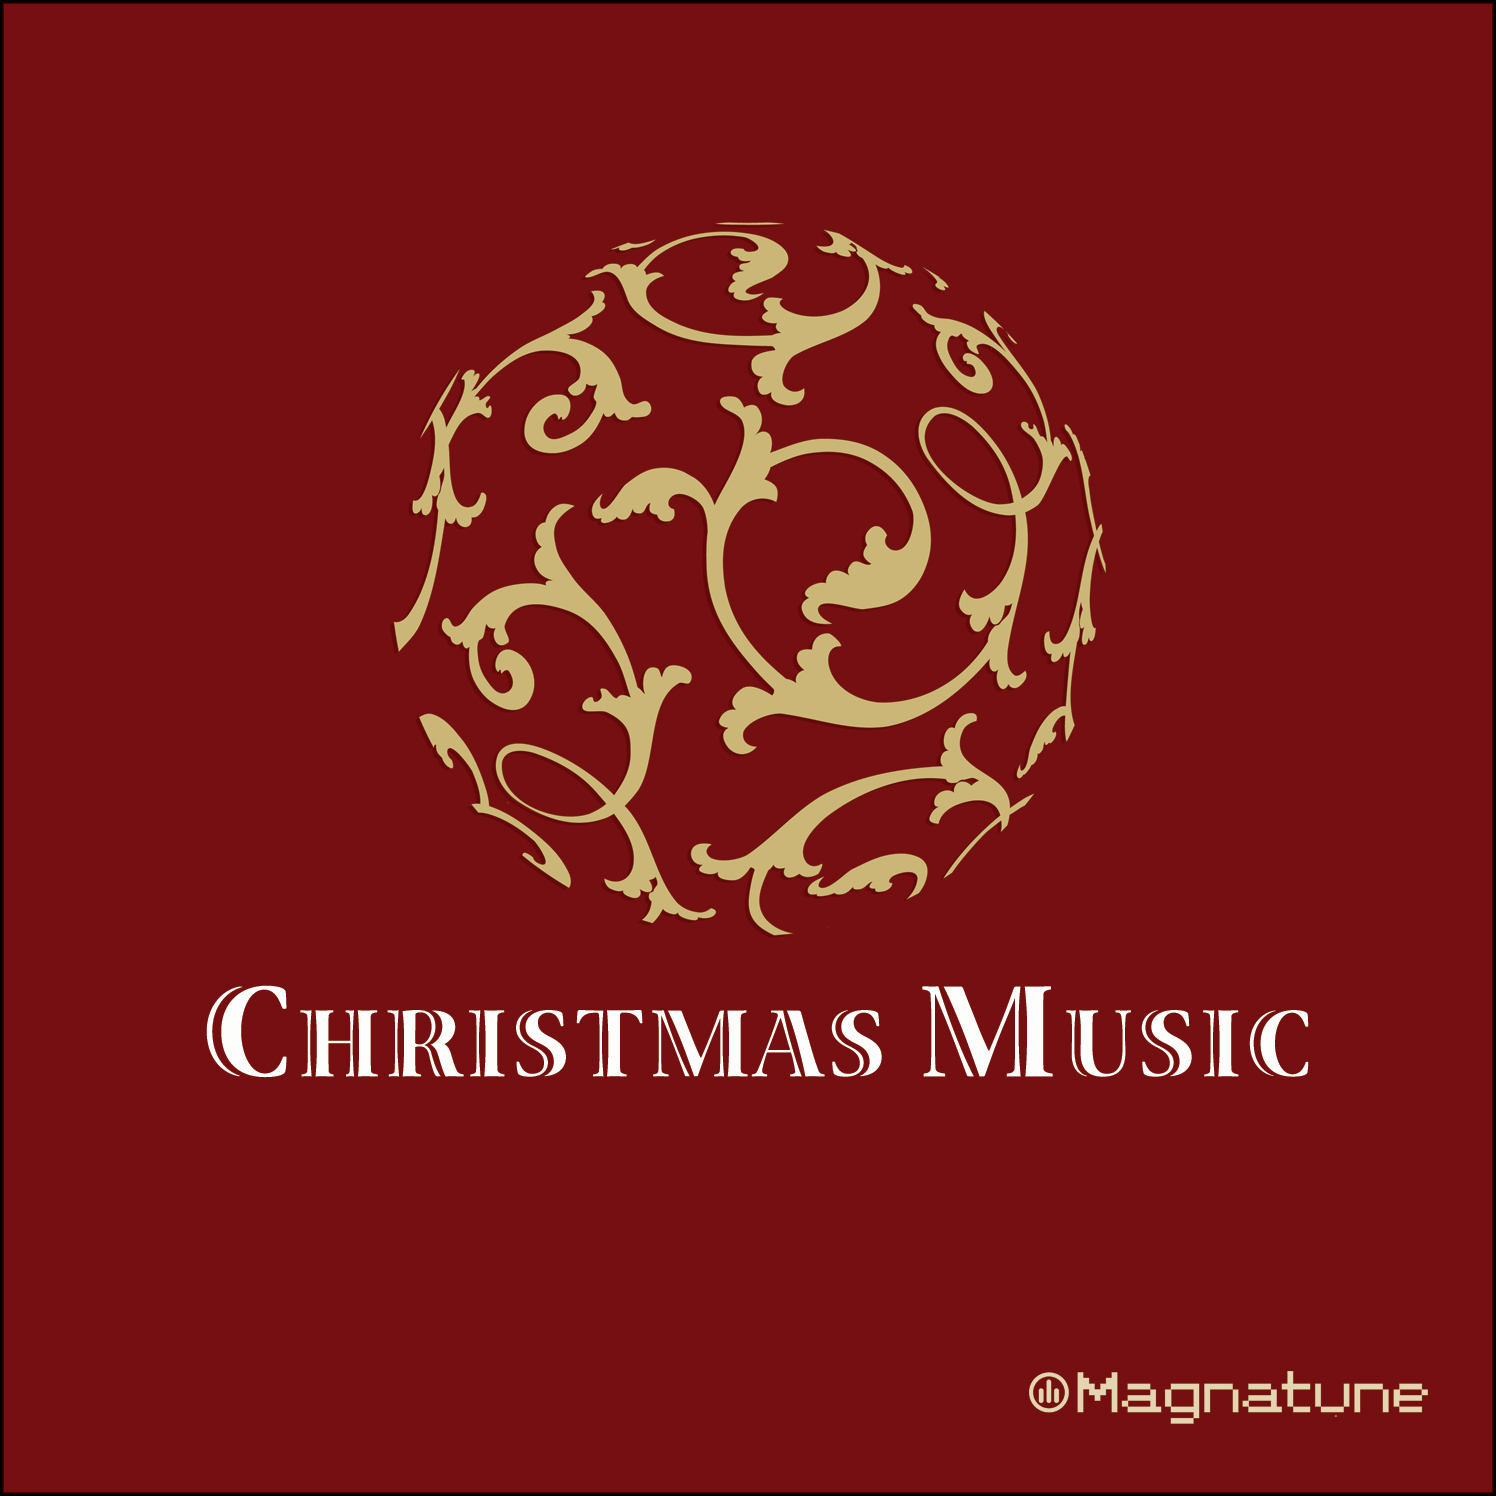 christmas music by magnatune compilation - Best Christmas Music